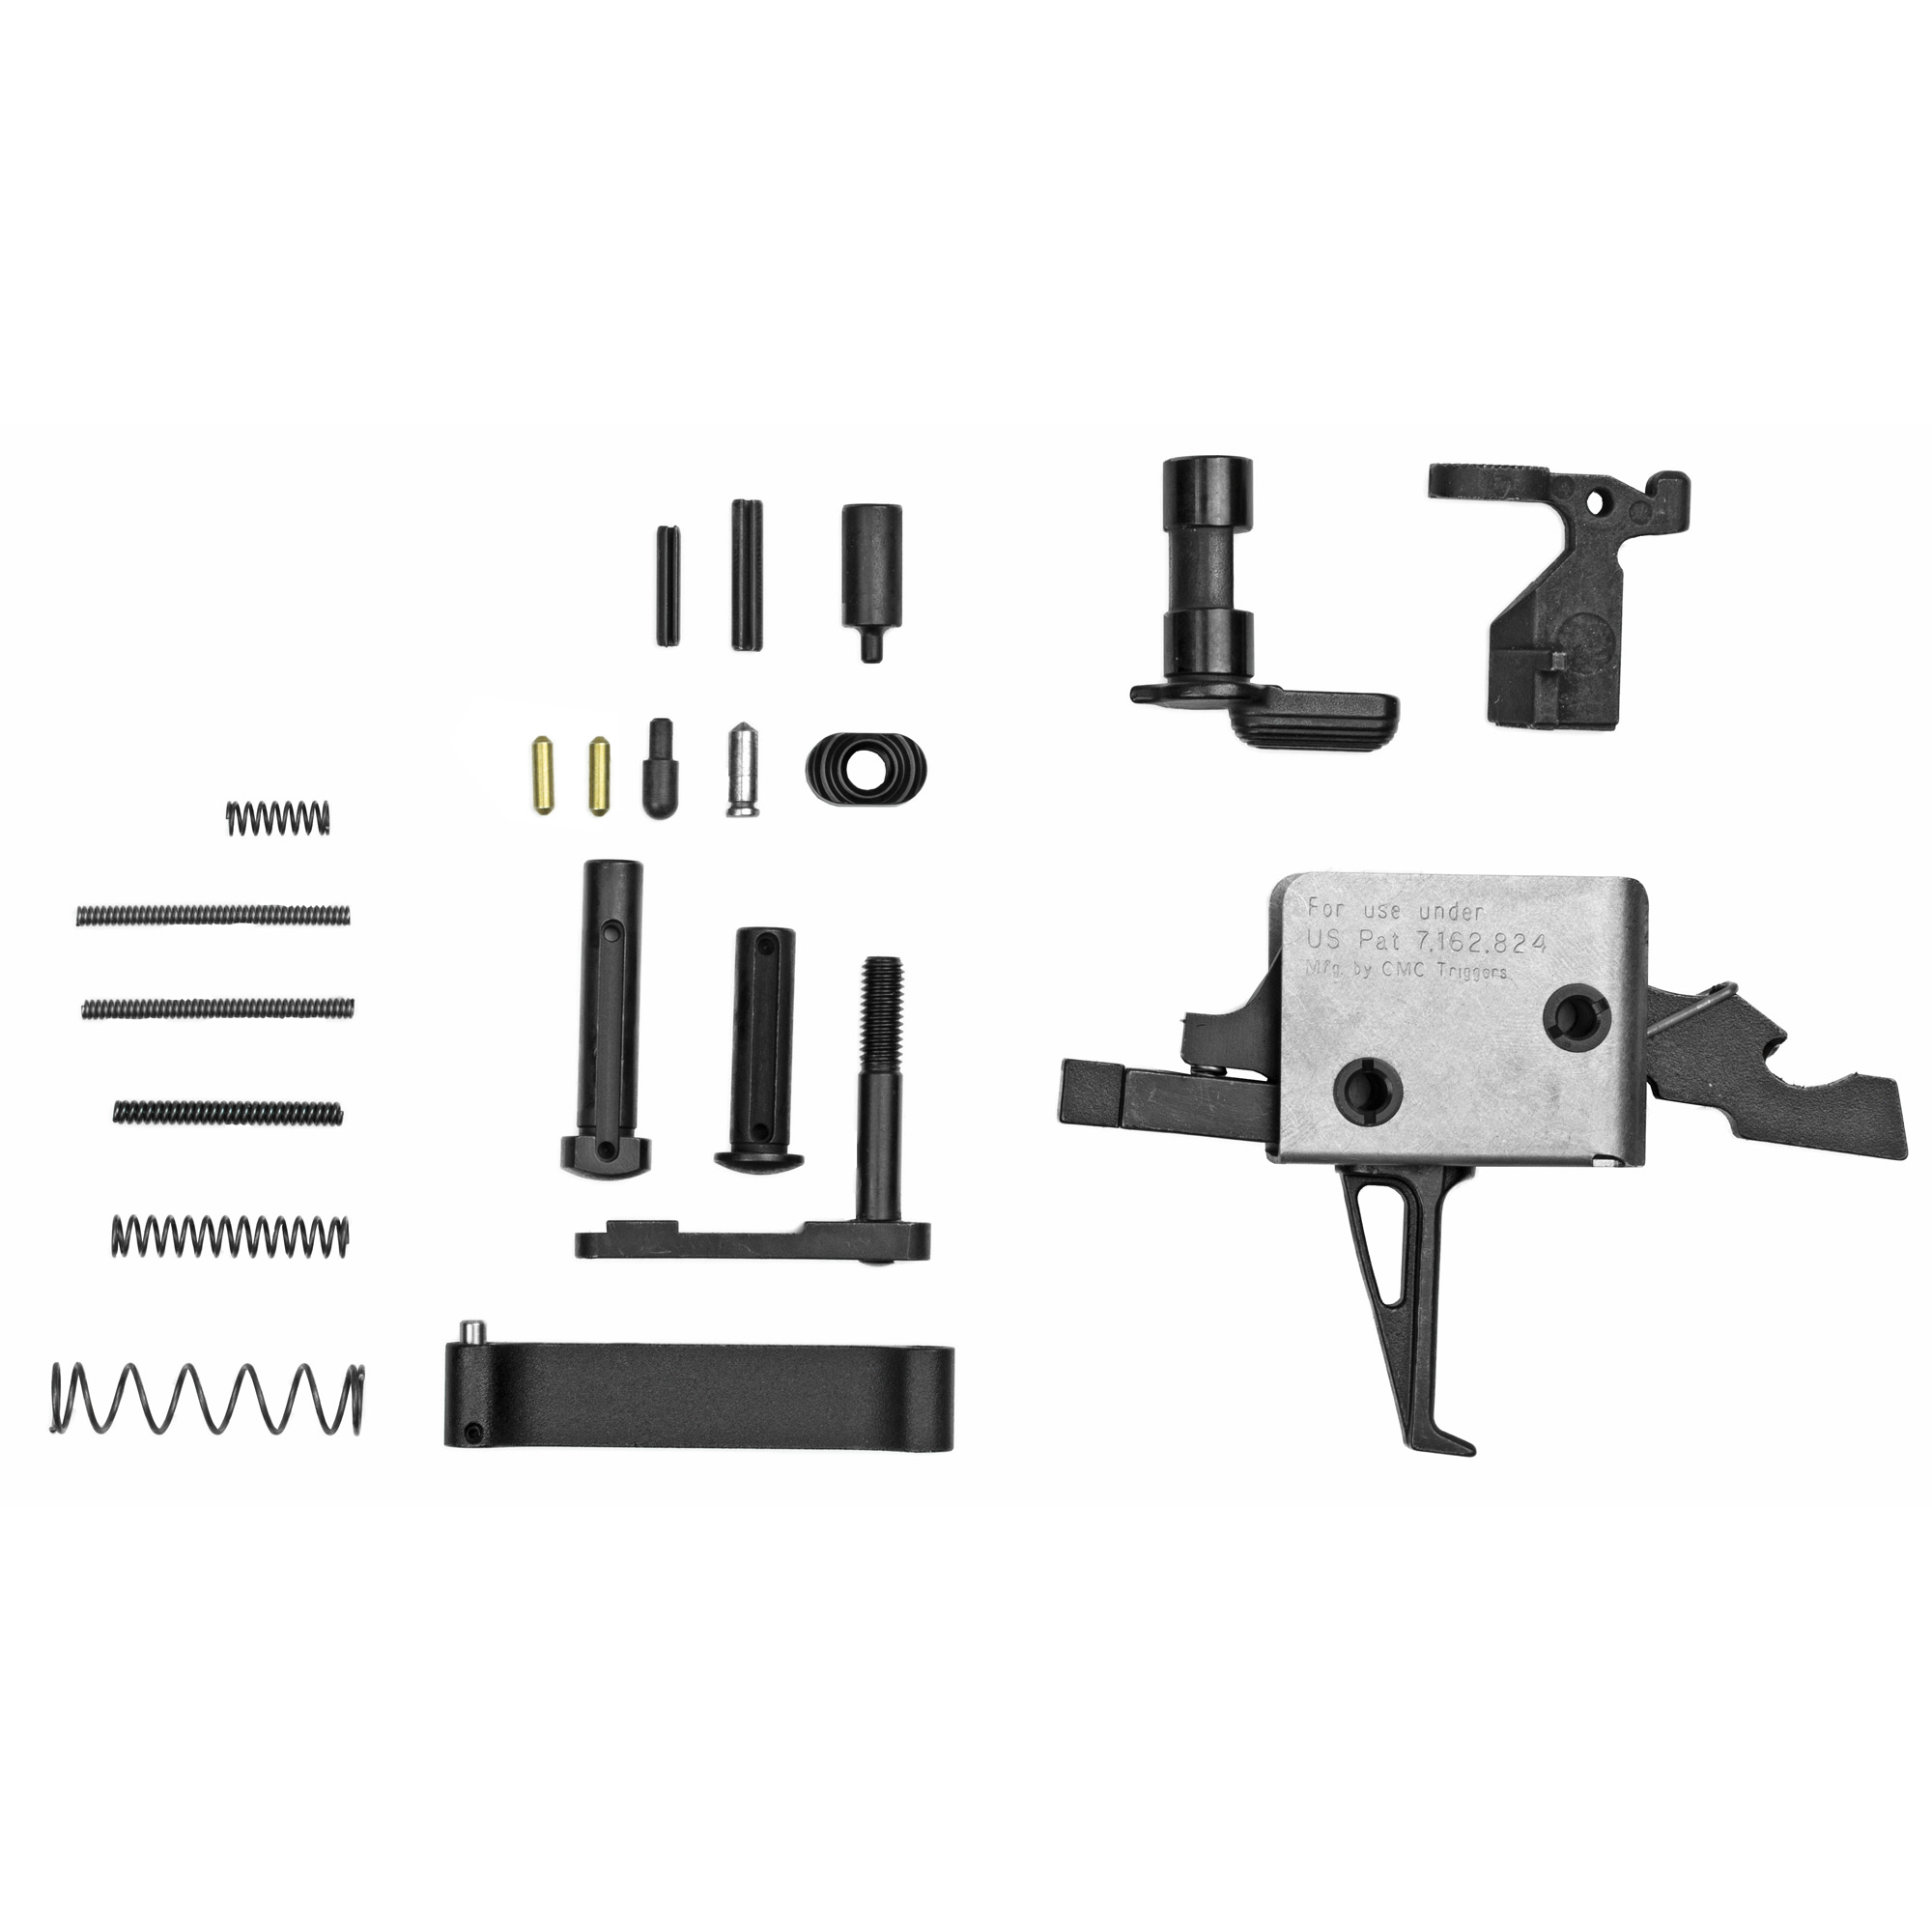 """Enhanced with a 3.5lb Single Stage Flat Trigger"""" this kit is a great addition to your AR15 build. From amateur gun builder to seasoned expert gun smith"""" this lower parts kit is for you. NOTE: Grip NOT included. Kit Contains 3.5lb Single Stage Trigger 1.Bolt Catch 2. Bolt Catch Plunger 3. Bolt Catch Spring 4. Bolt Catch Roll Pin 5. Mag Release 6. Mag Release Button 7. Mag Release Spring 8. Buffer Retainer Spring 9. Safety 10. Buffer Retainer 11. Safety Detent Spring 12. Safety Detent 13. Trigger Guard 14. Trigger Guard Roll Pin 15. Takedown Detent Springs 16. Takedown Detents 17. Takedown Pins. All parts meet or exceed MIL SPEC"""